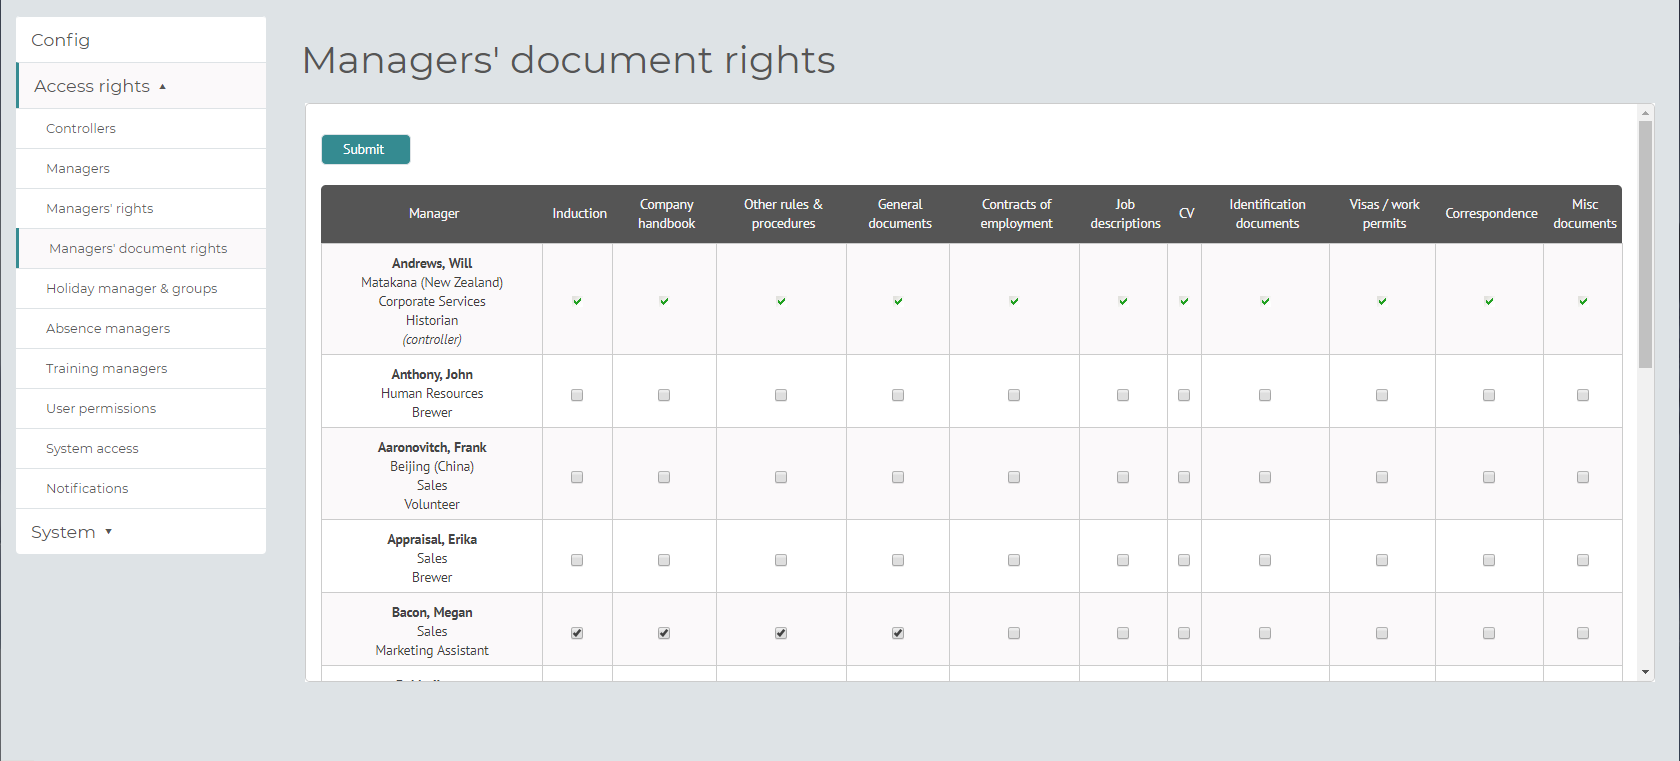 myhrtoolkit managers' document rights